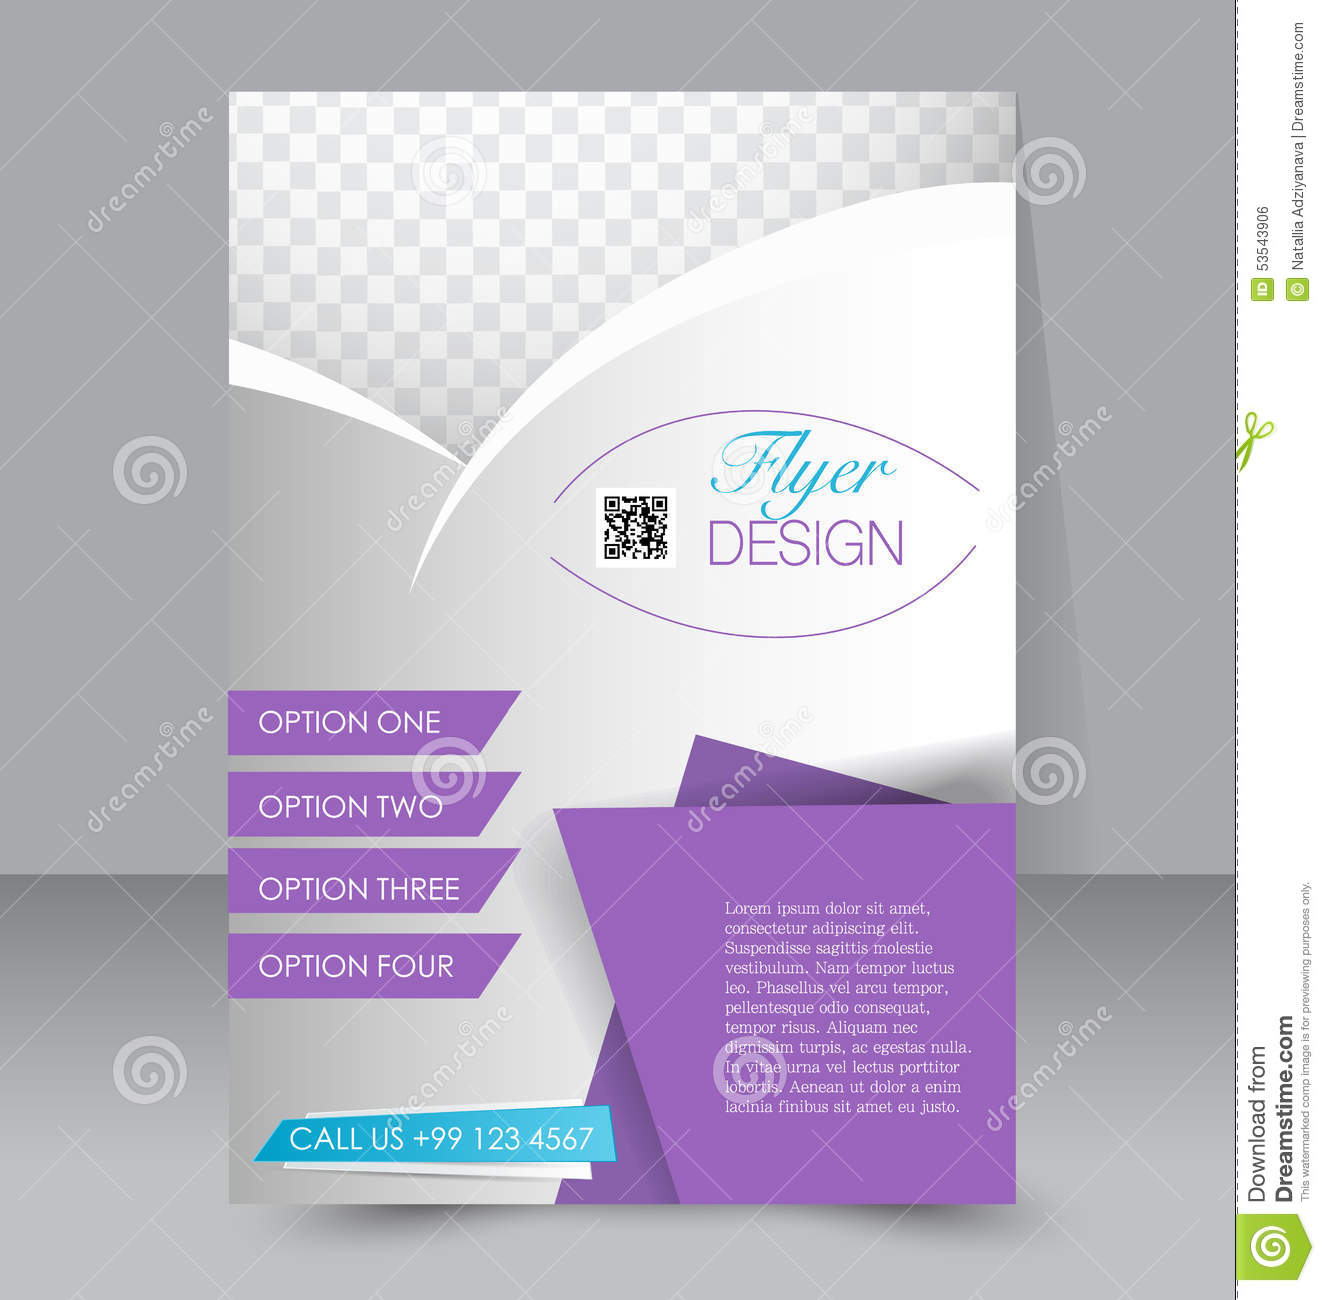 template for brochure free - flyer template business brochure editable a4 poster